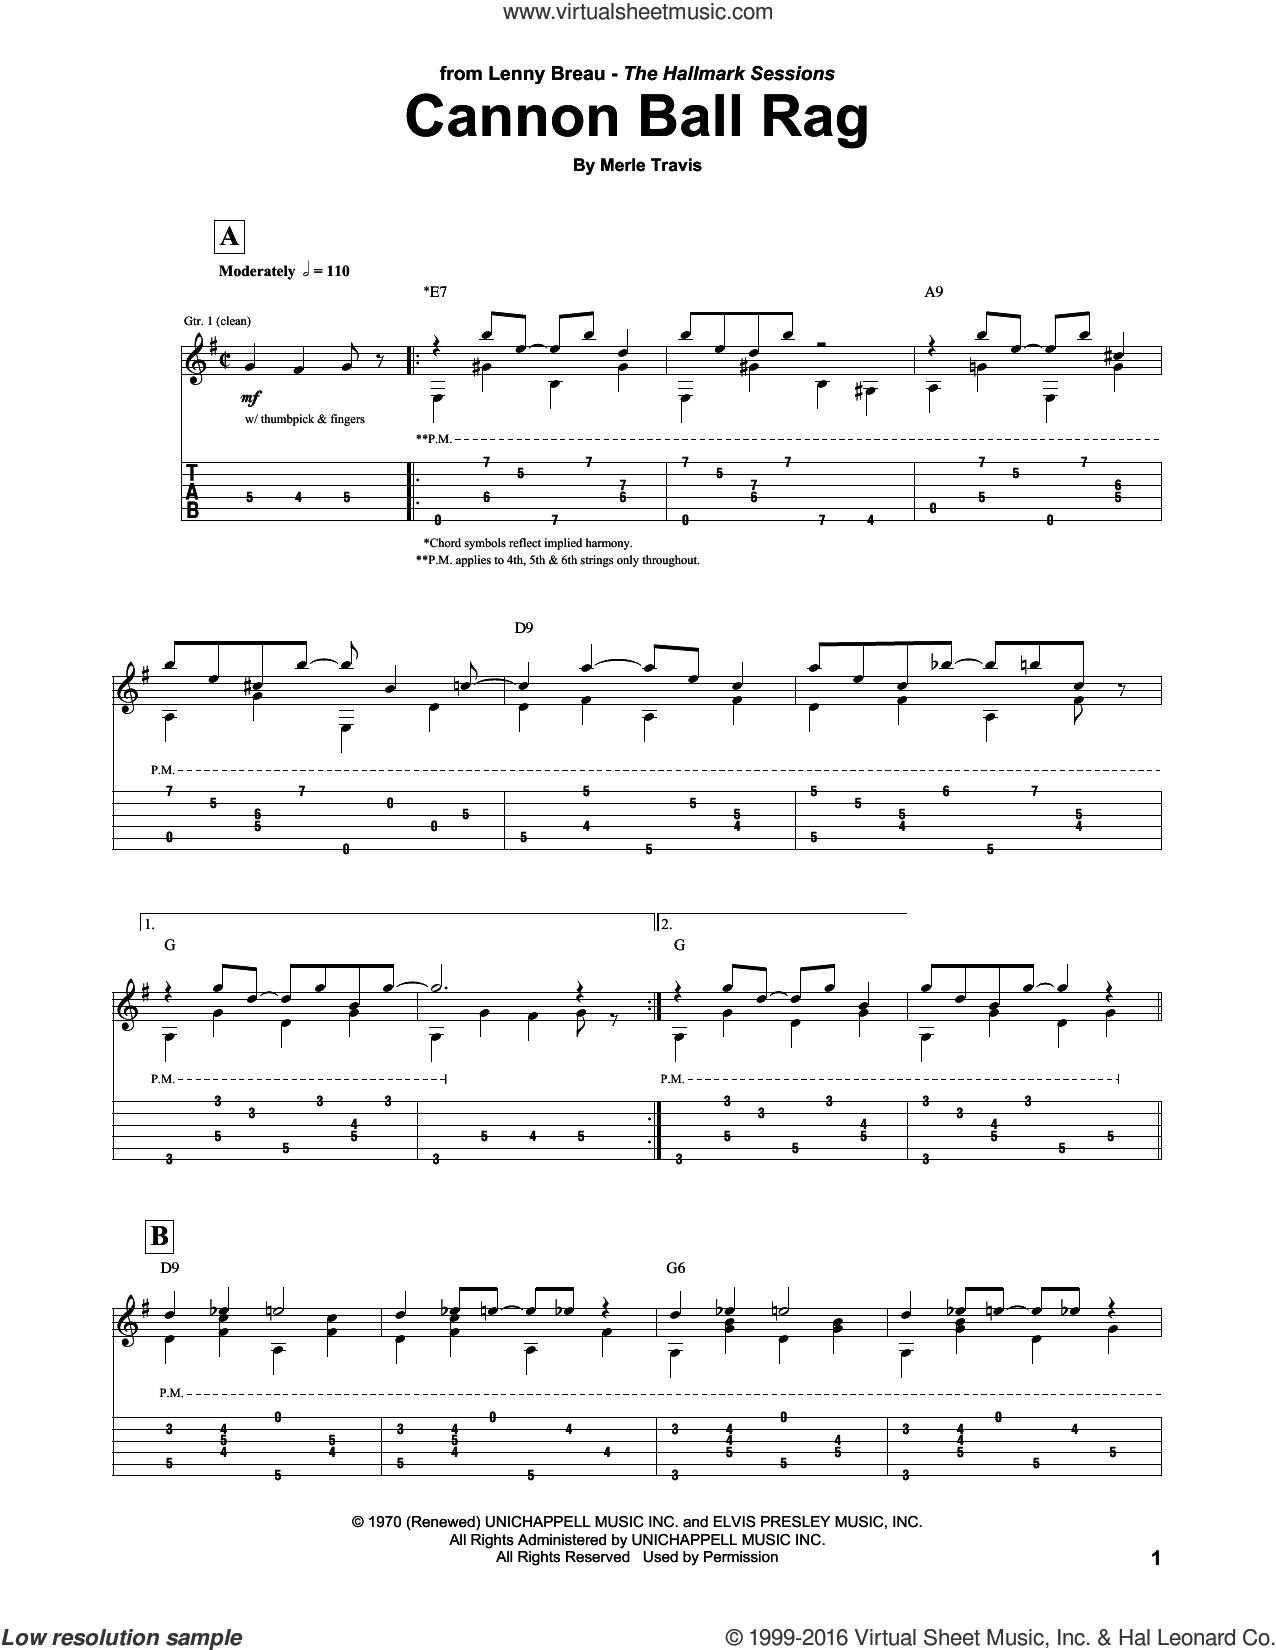 Cannon Ball Rag sheet music for guitar (tablature) by Lenny Breau and Merle Travis. Score Image Preview.